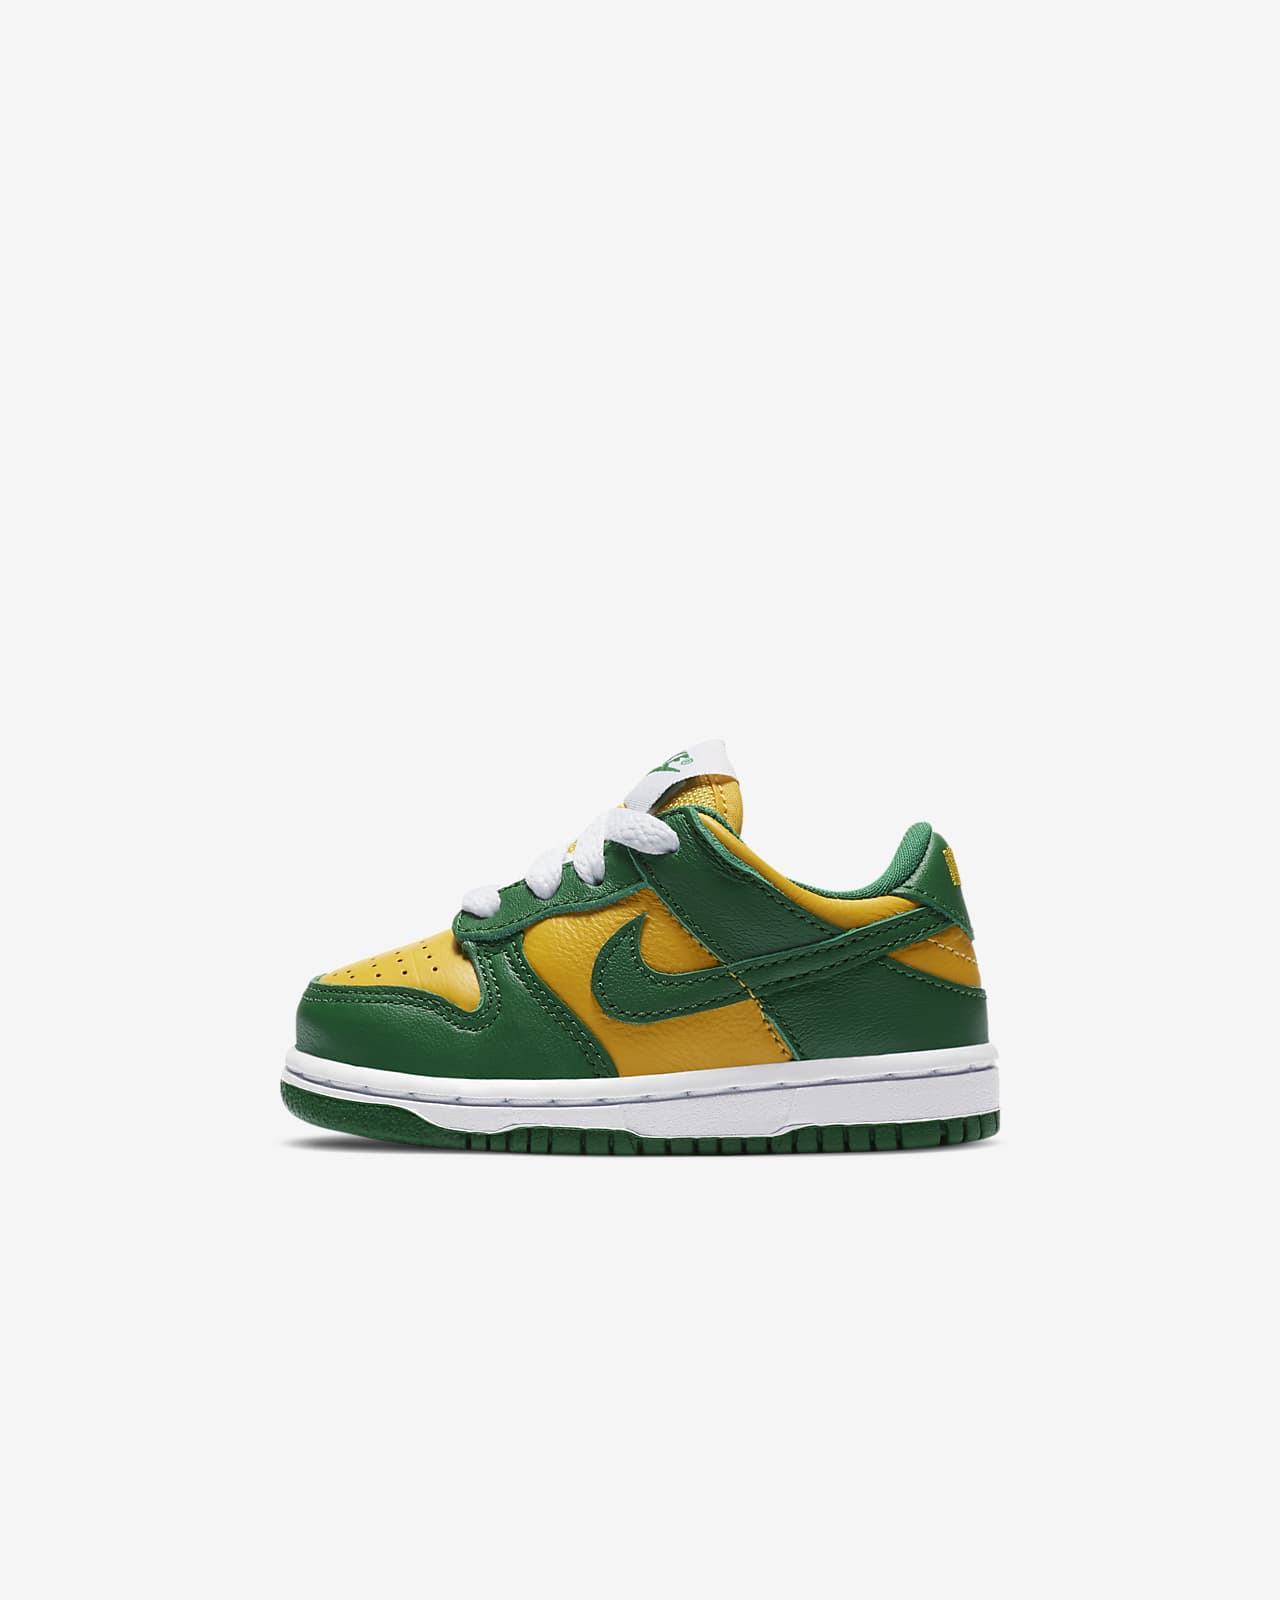 Nike Dunk Low SP Baby and Toddler Shoe